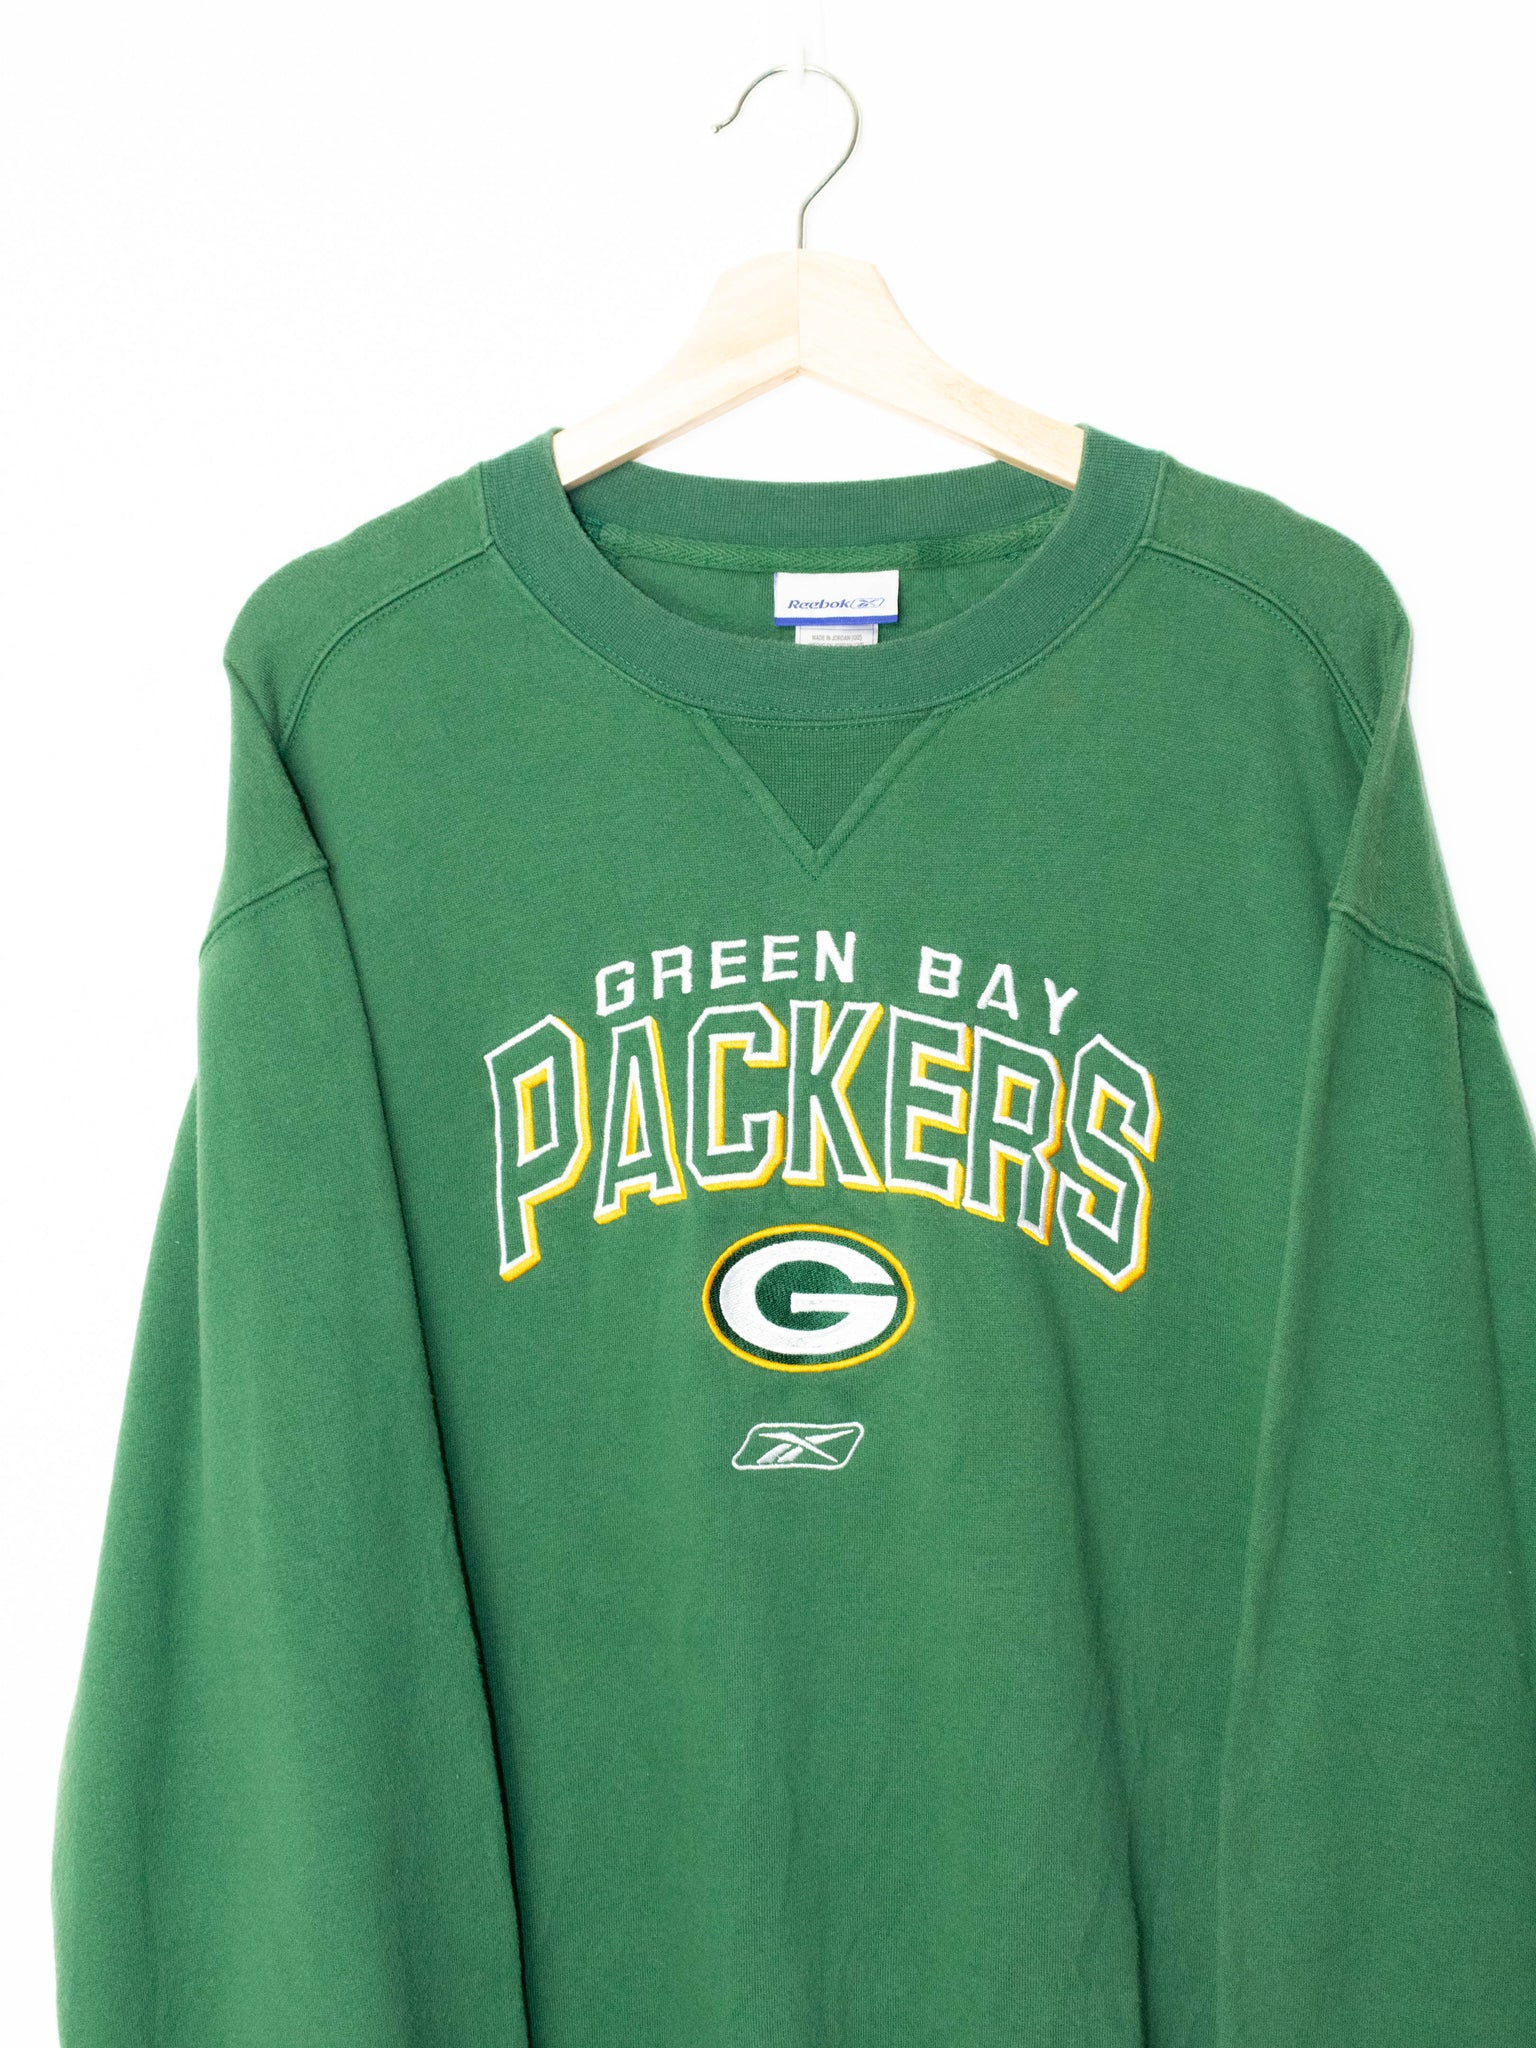 Vintage Green Bay Packers sweater size: L